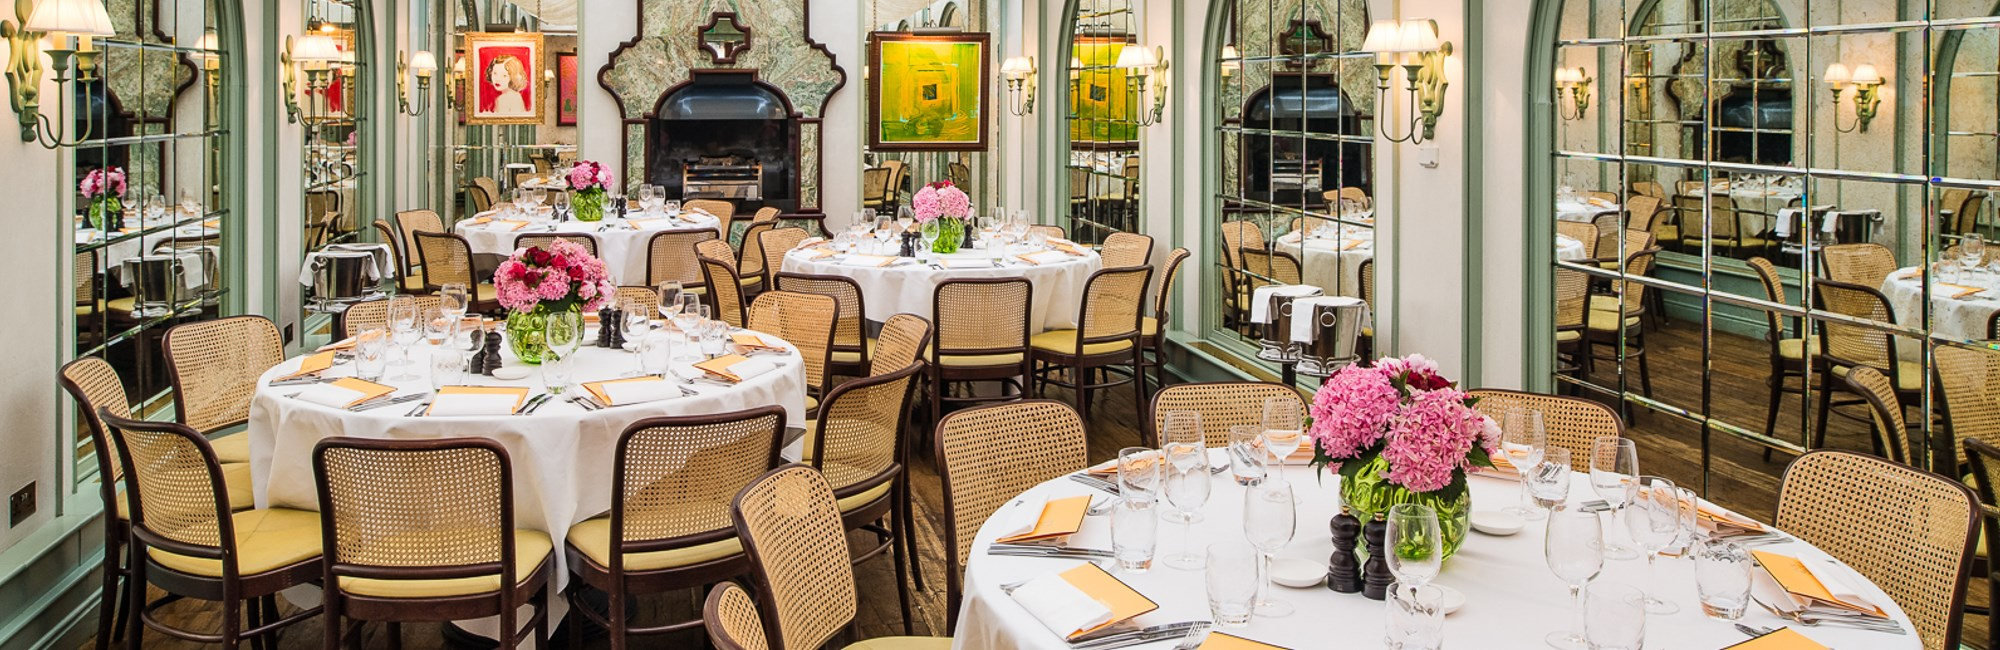 Restaurant Private Hire and Group Dining in Chelsea, Daphne's